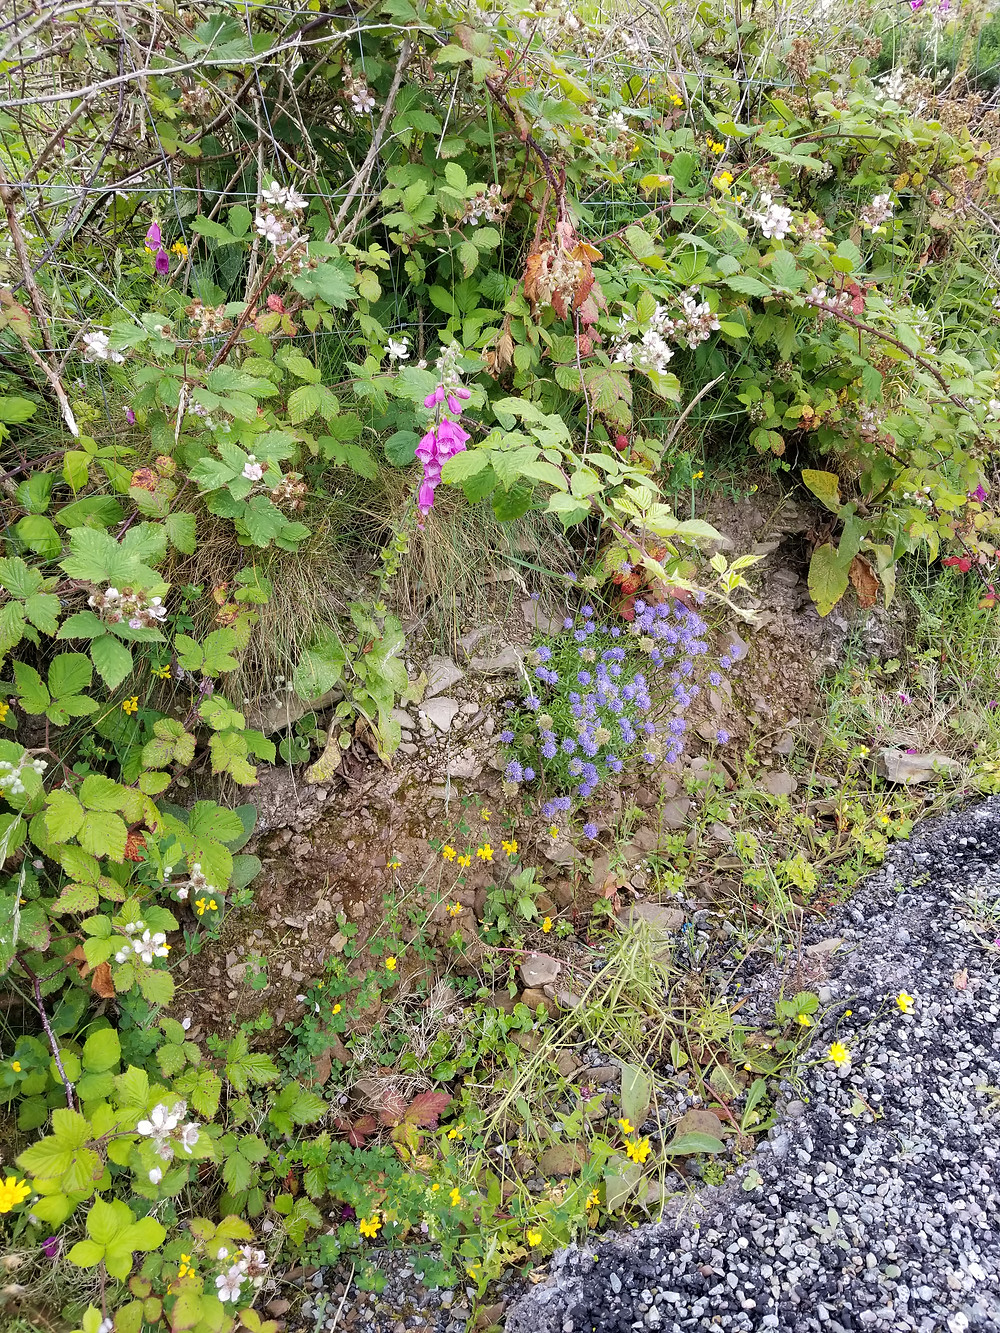 Dingle Peninsula, Slea Head Drive: roadside herbs, foxglove, Birds-foot-trefoil (Lotus pedunculatus) and others. I do not know the name of the blue flowered plant.